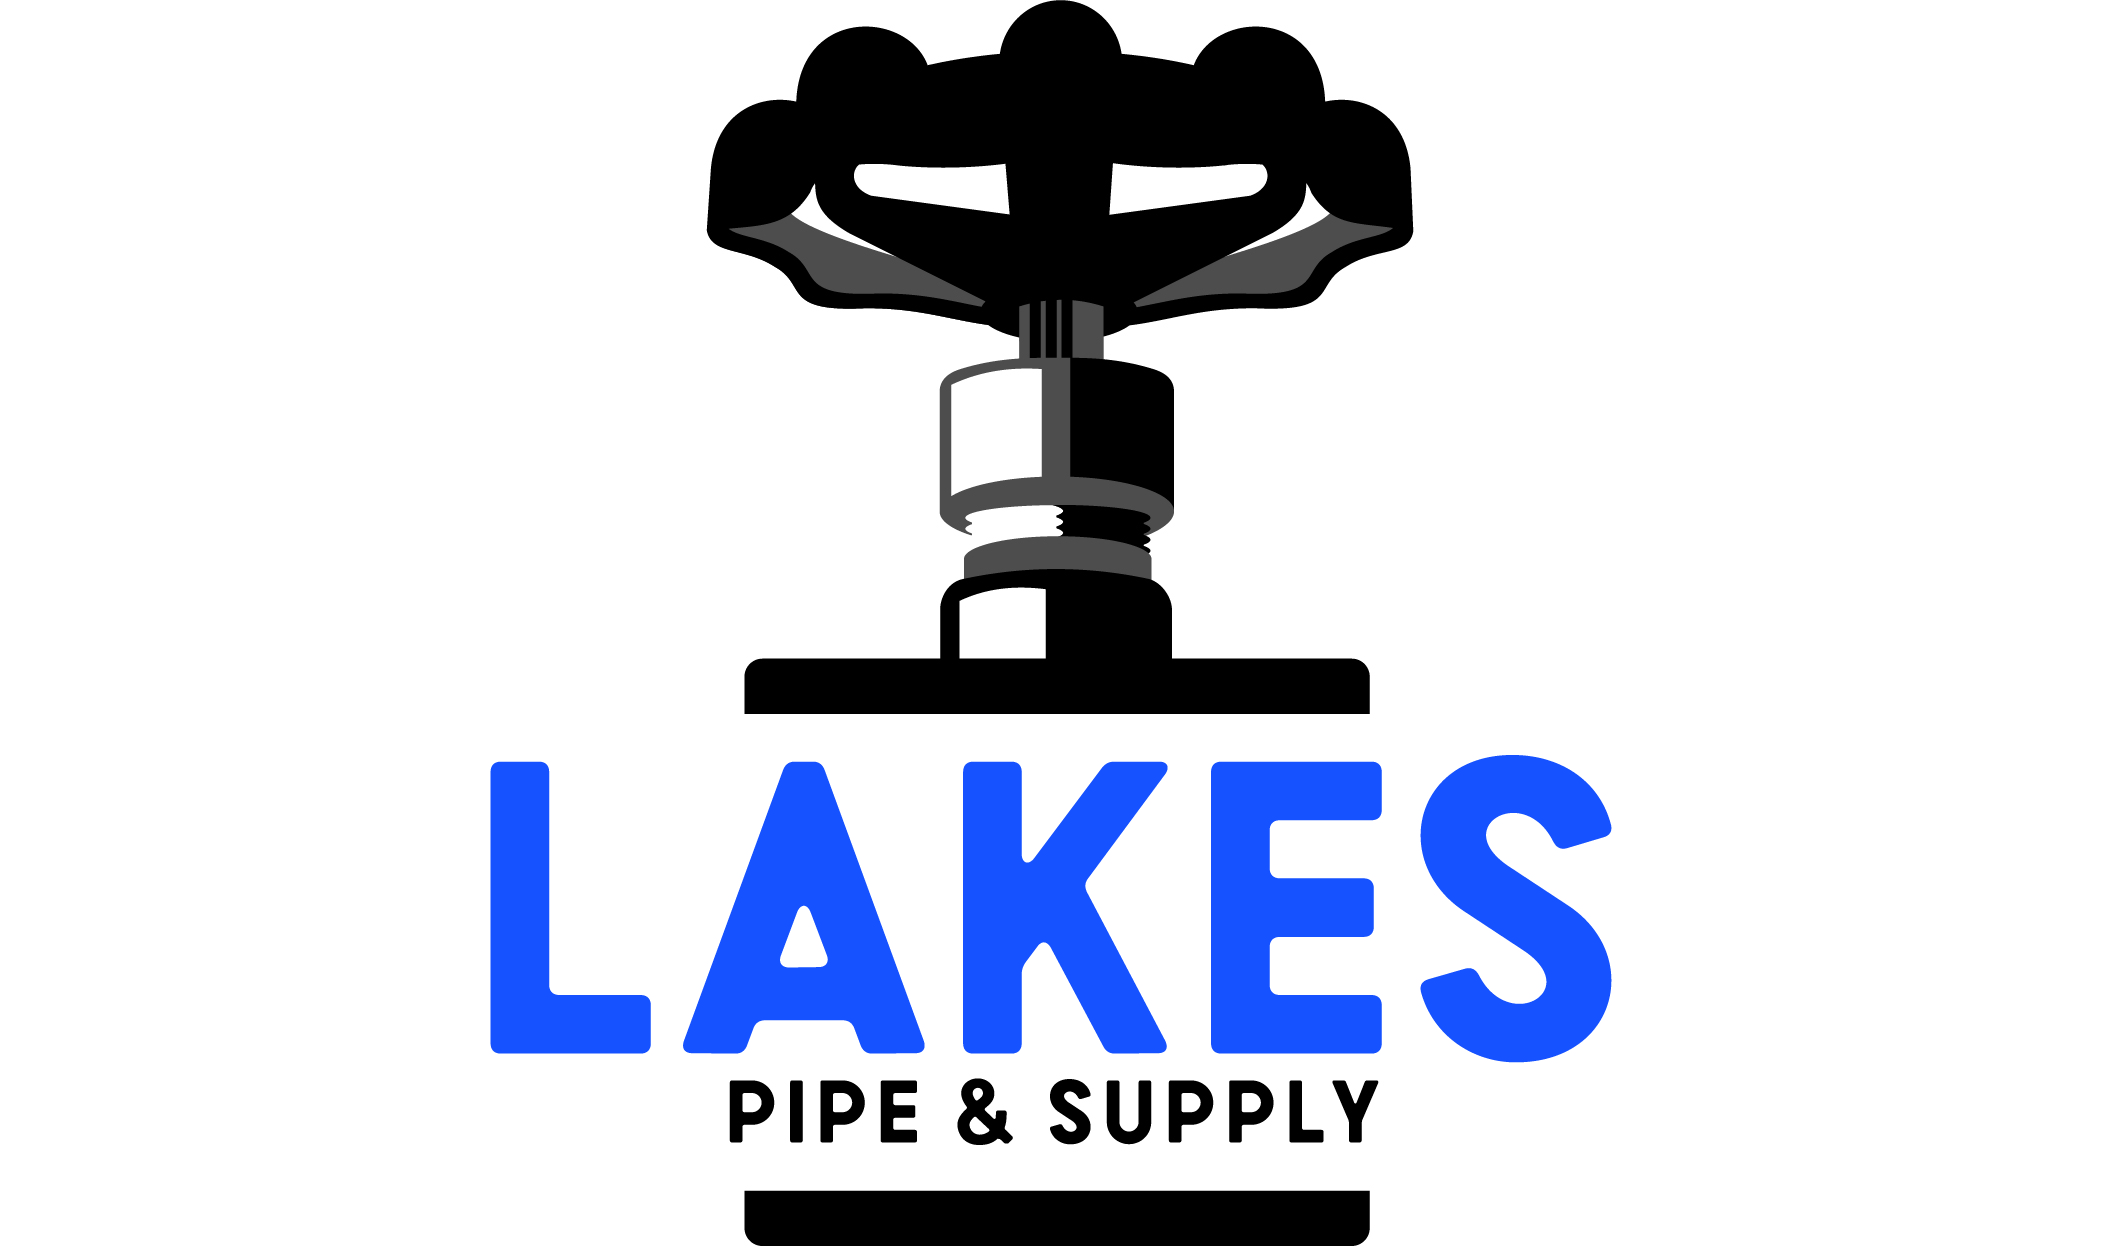 Lakes Pipe & Supply